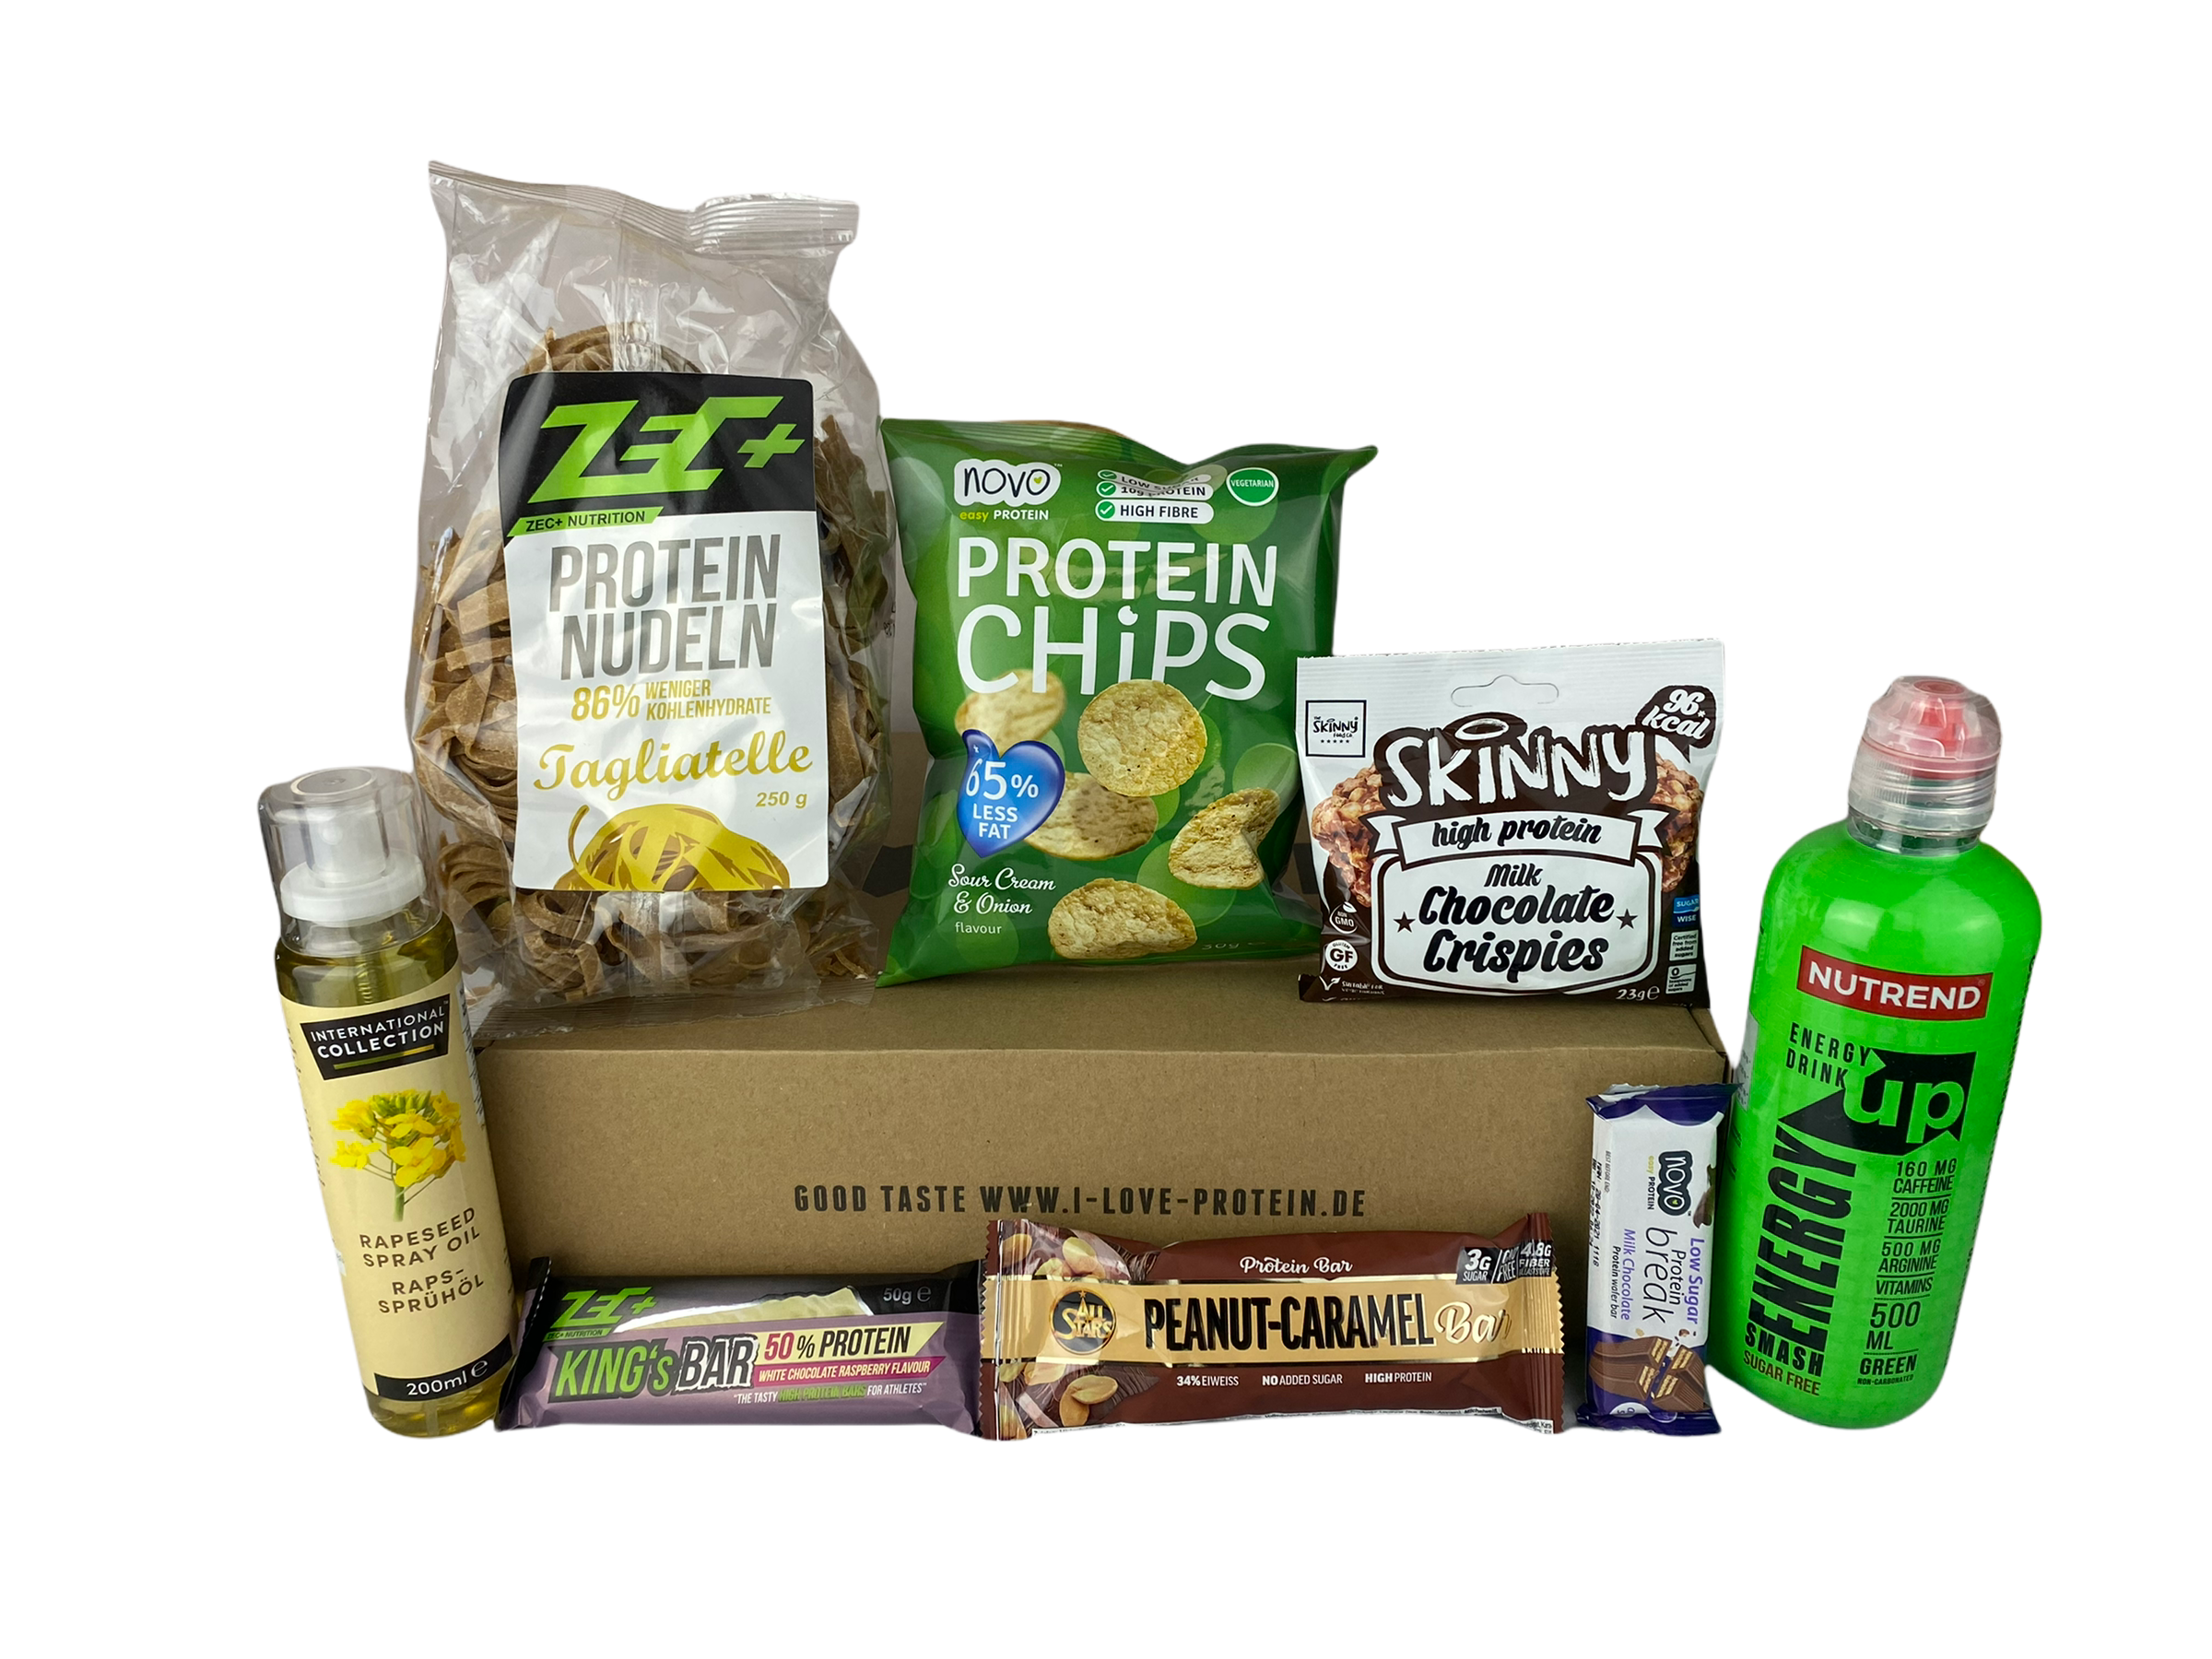 I-Love-Protein August Box